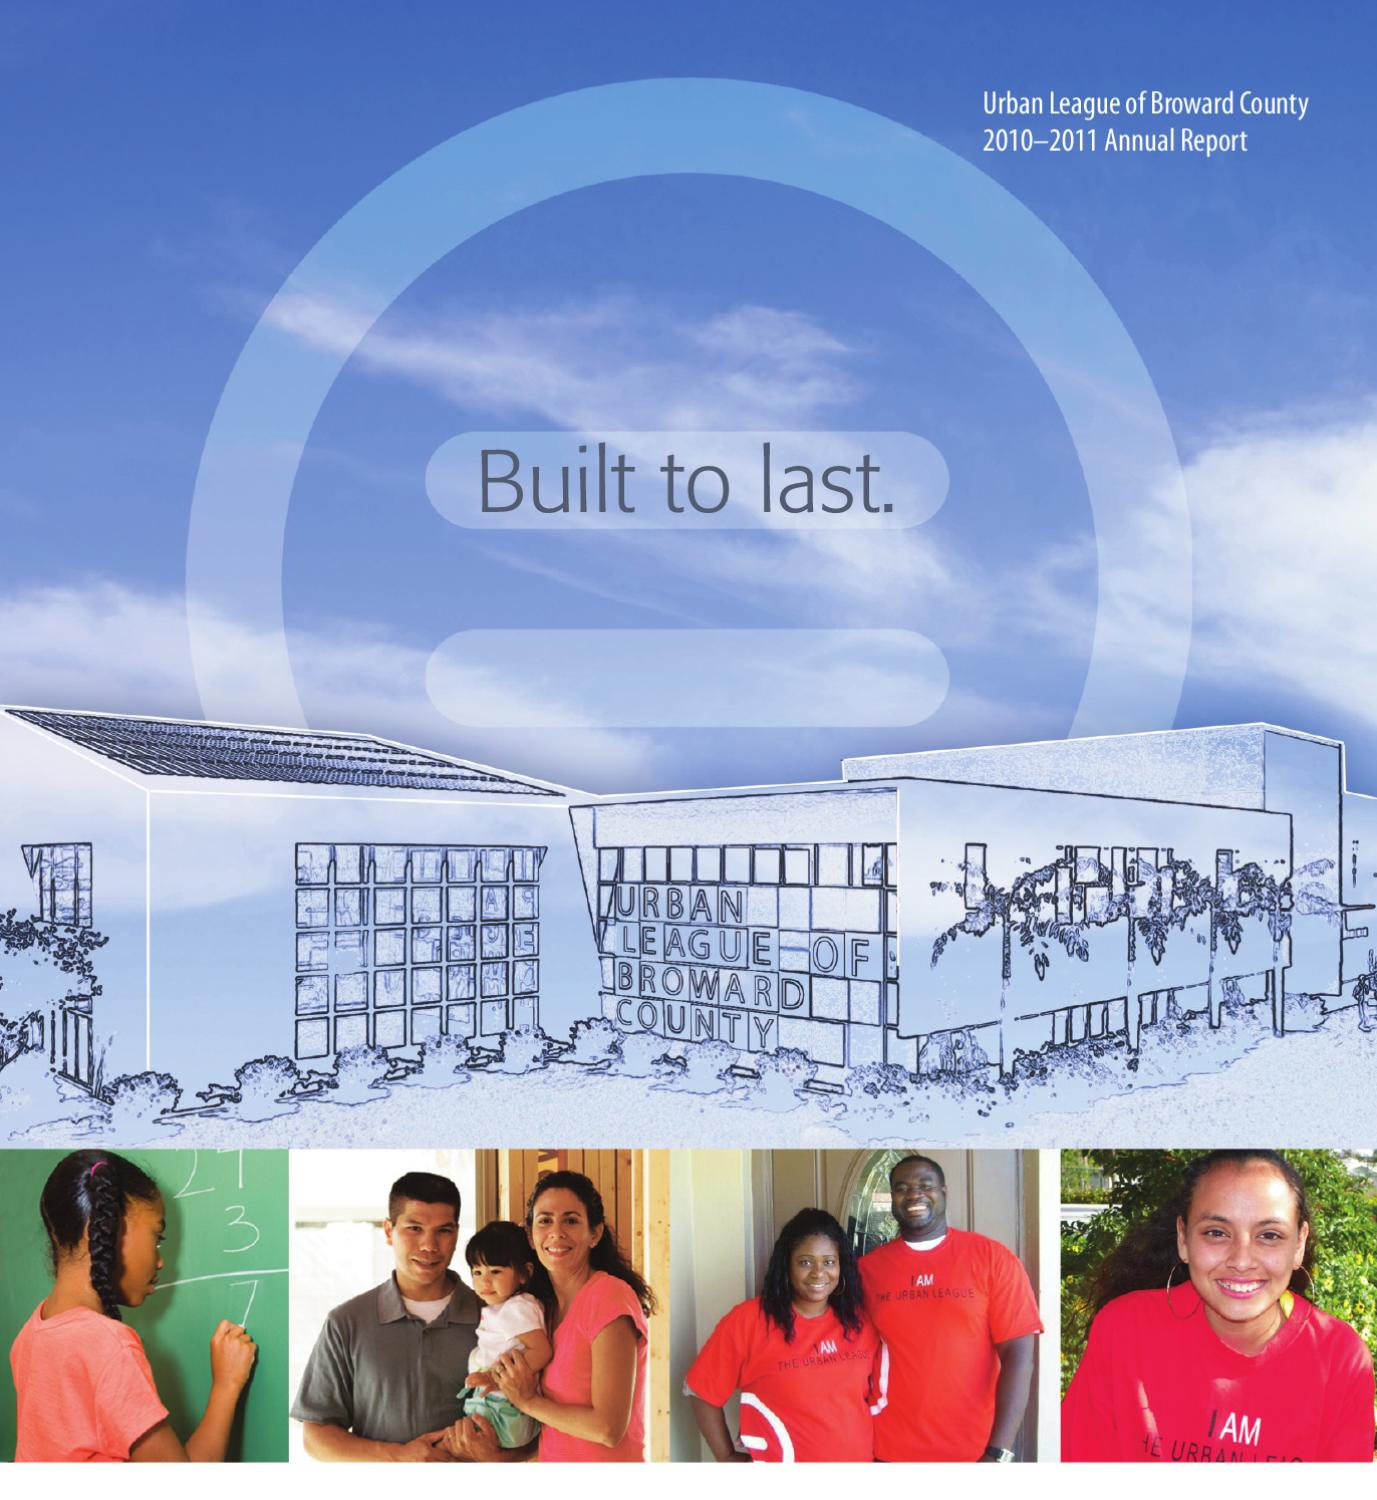 urban league of broward county - 2010-11 annual report by alica